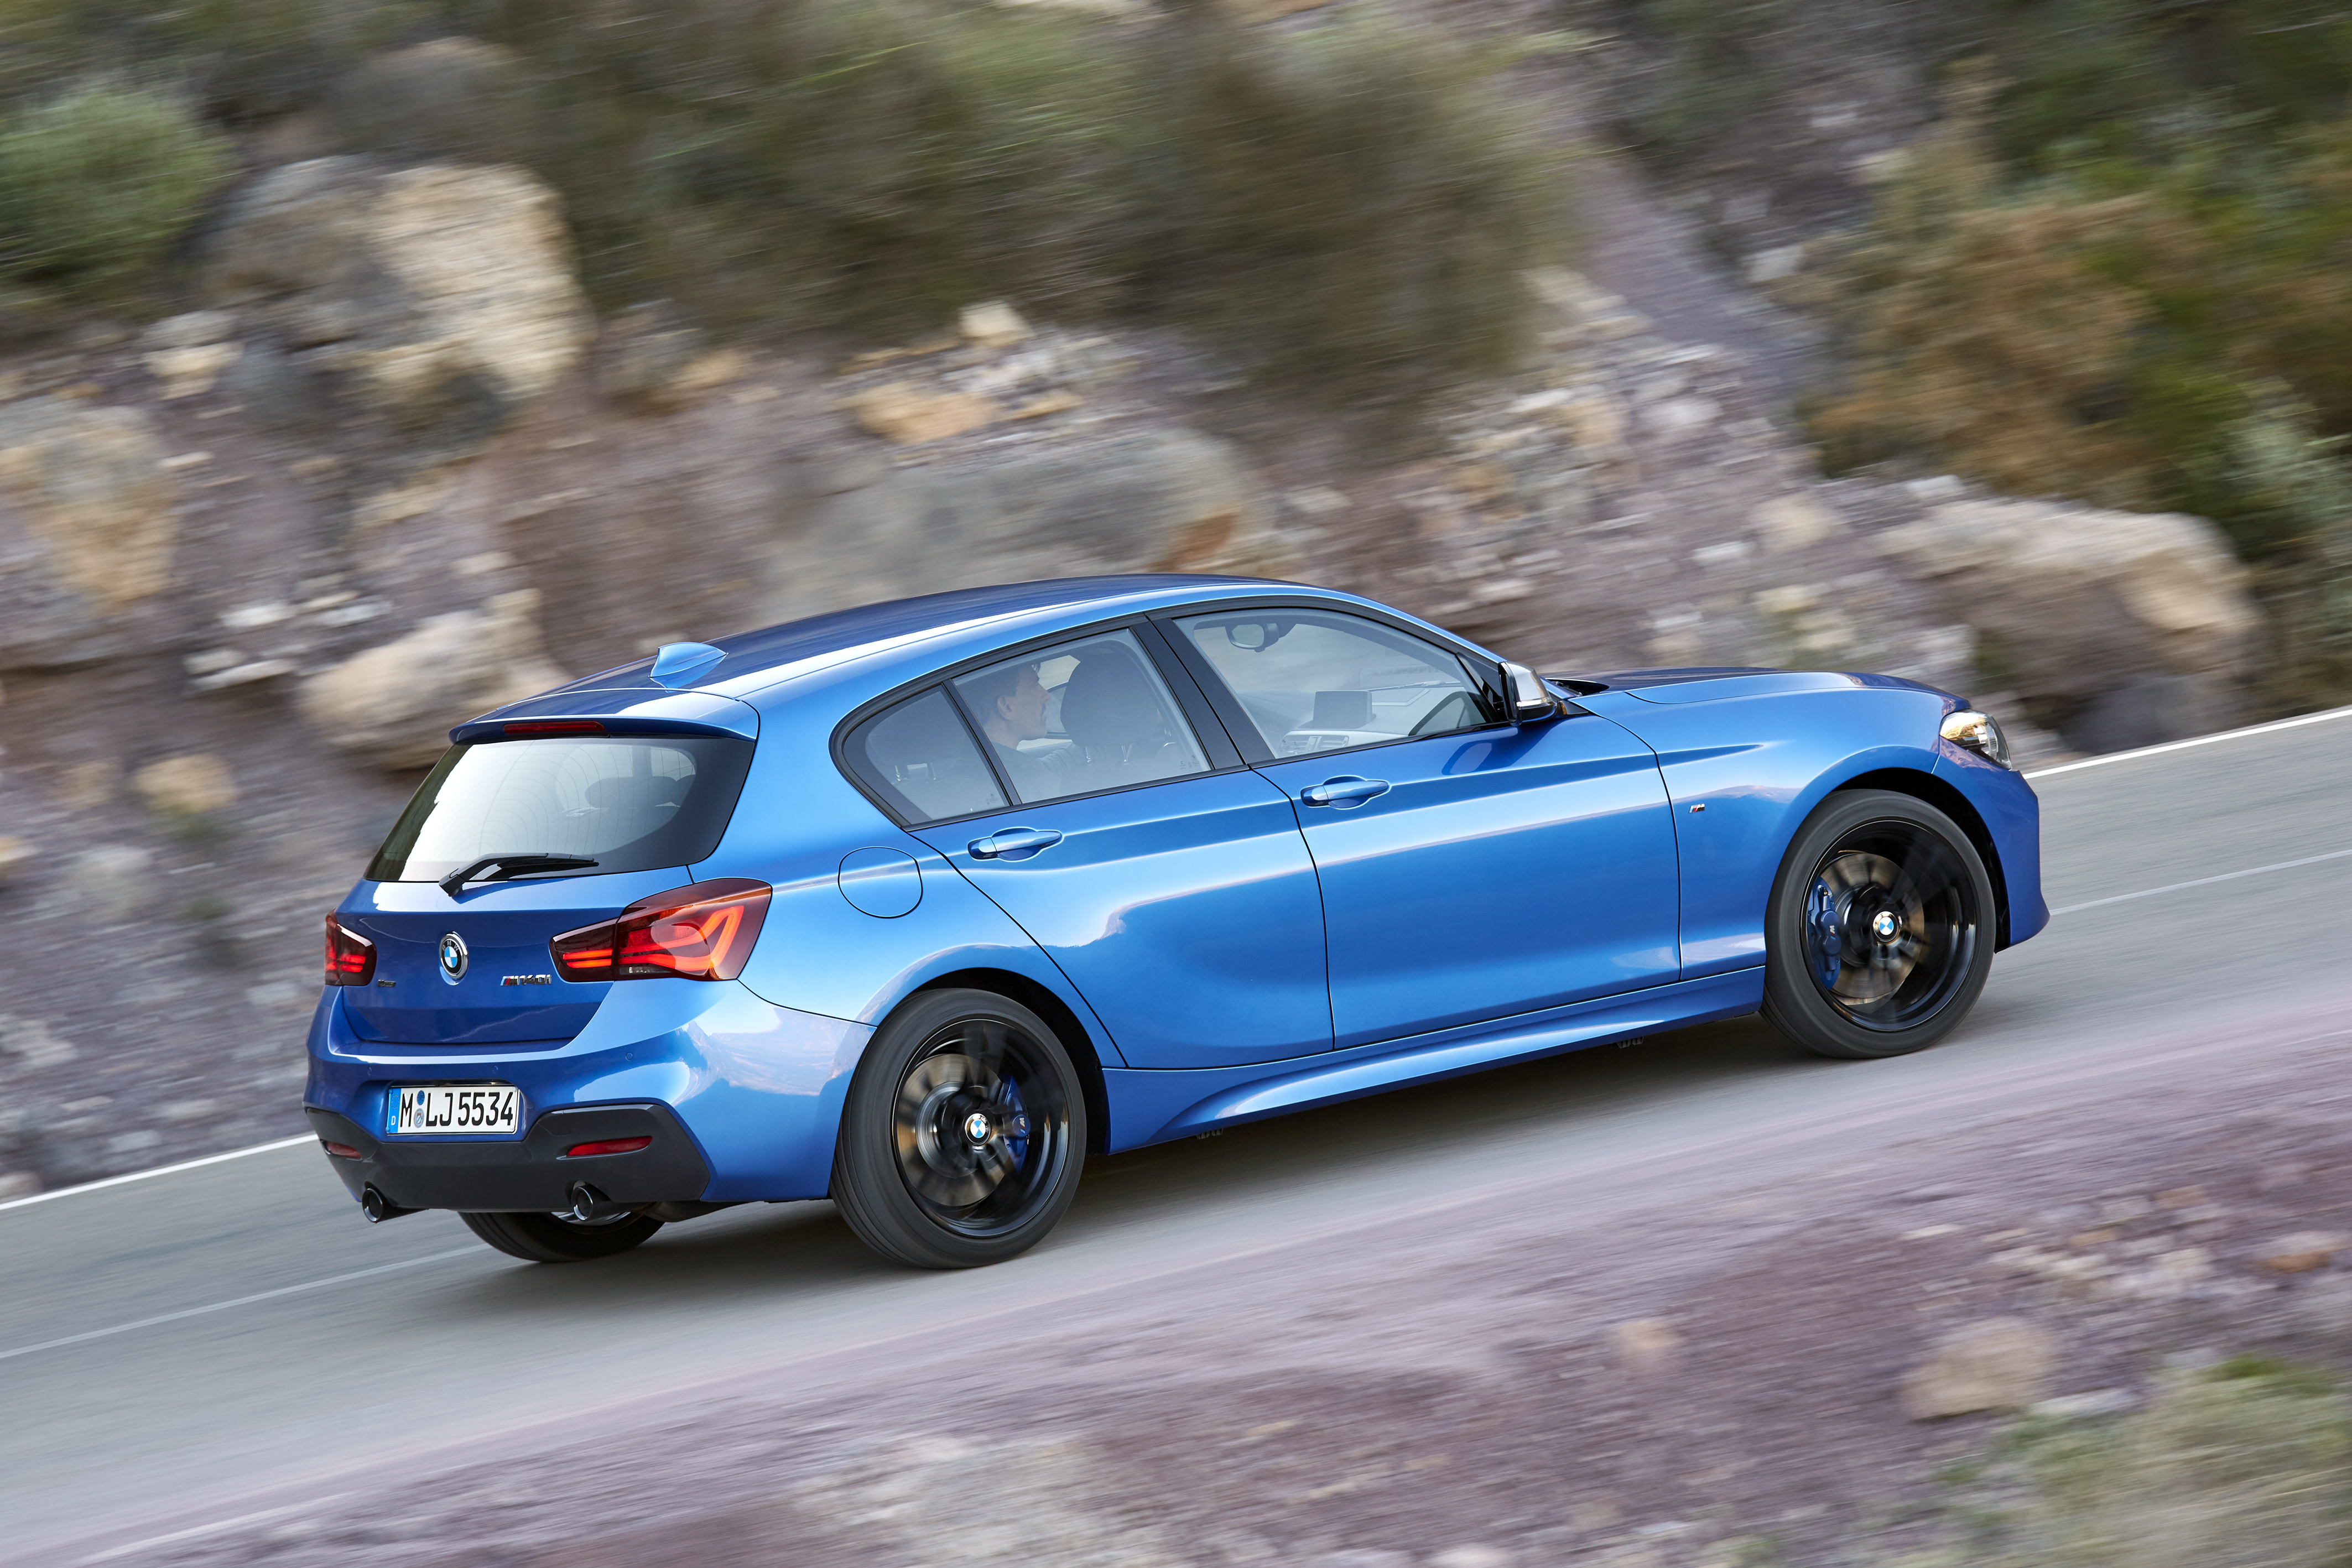 F20 BMW 1 Series gets updated interior, revised kit Image ...